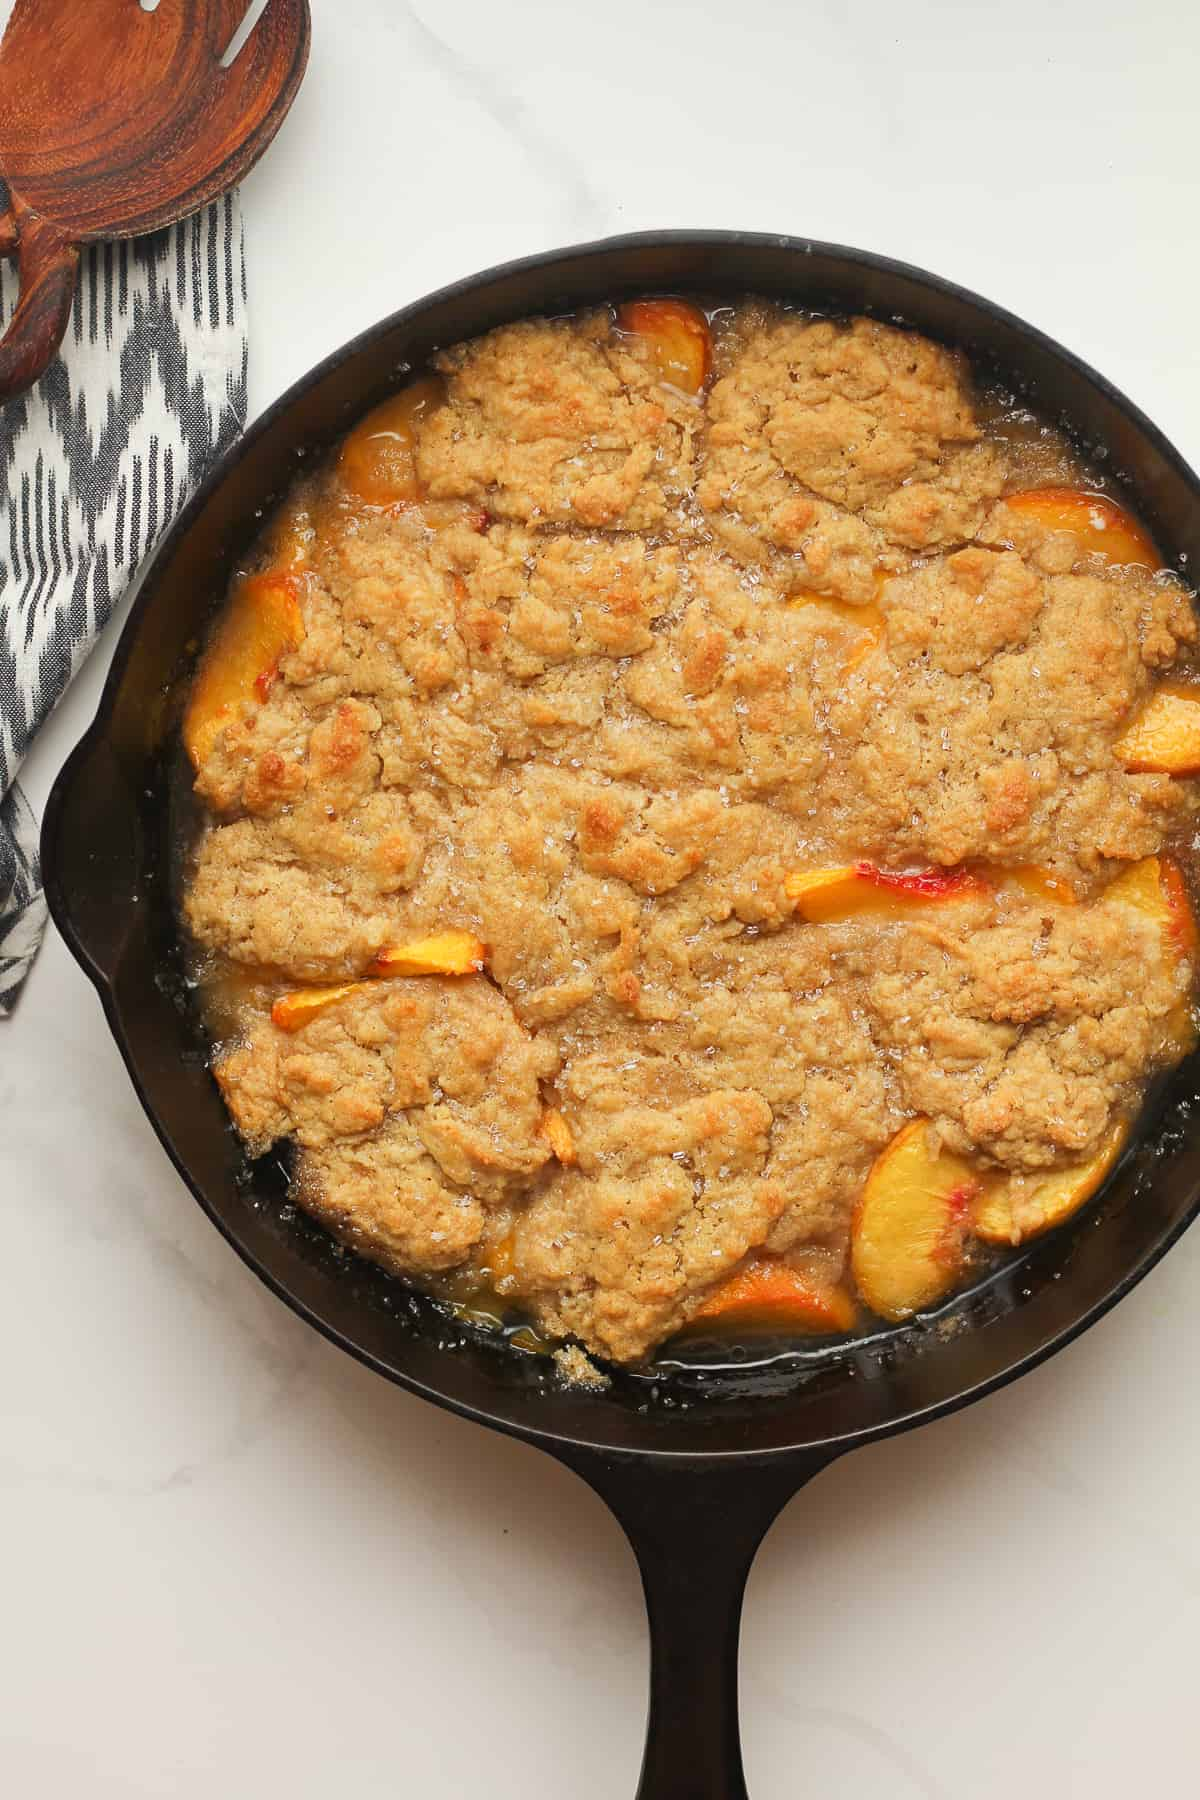 A skillet of peach cobbler just baked.